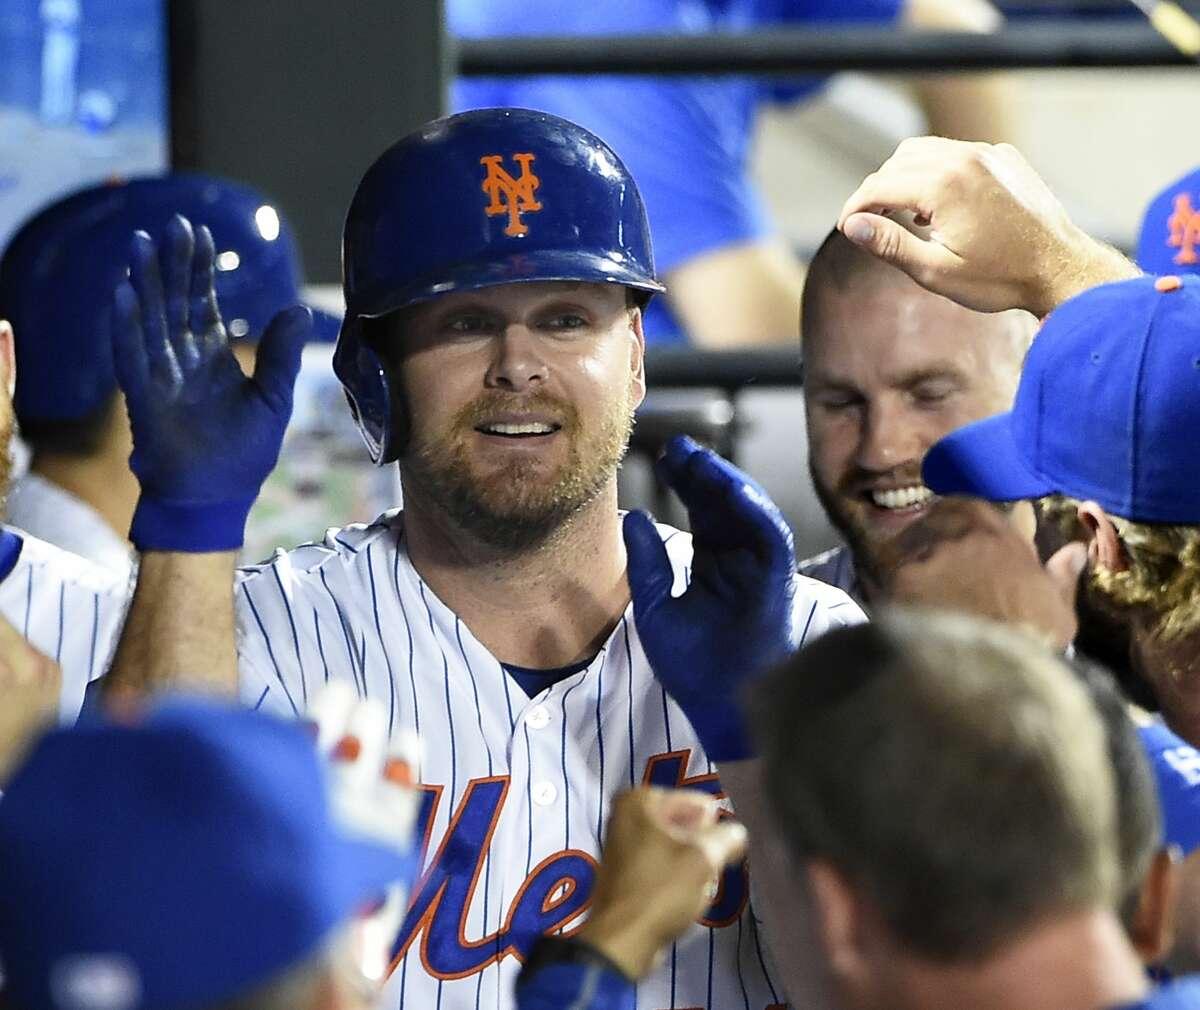 Lucas Duda is congratulated by his Mets teammates in the dugout after hitting his second home run against the Washington Nationals in the seventh inning at Citi Field on Saturday.